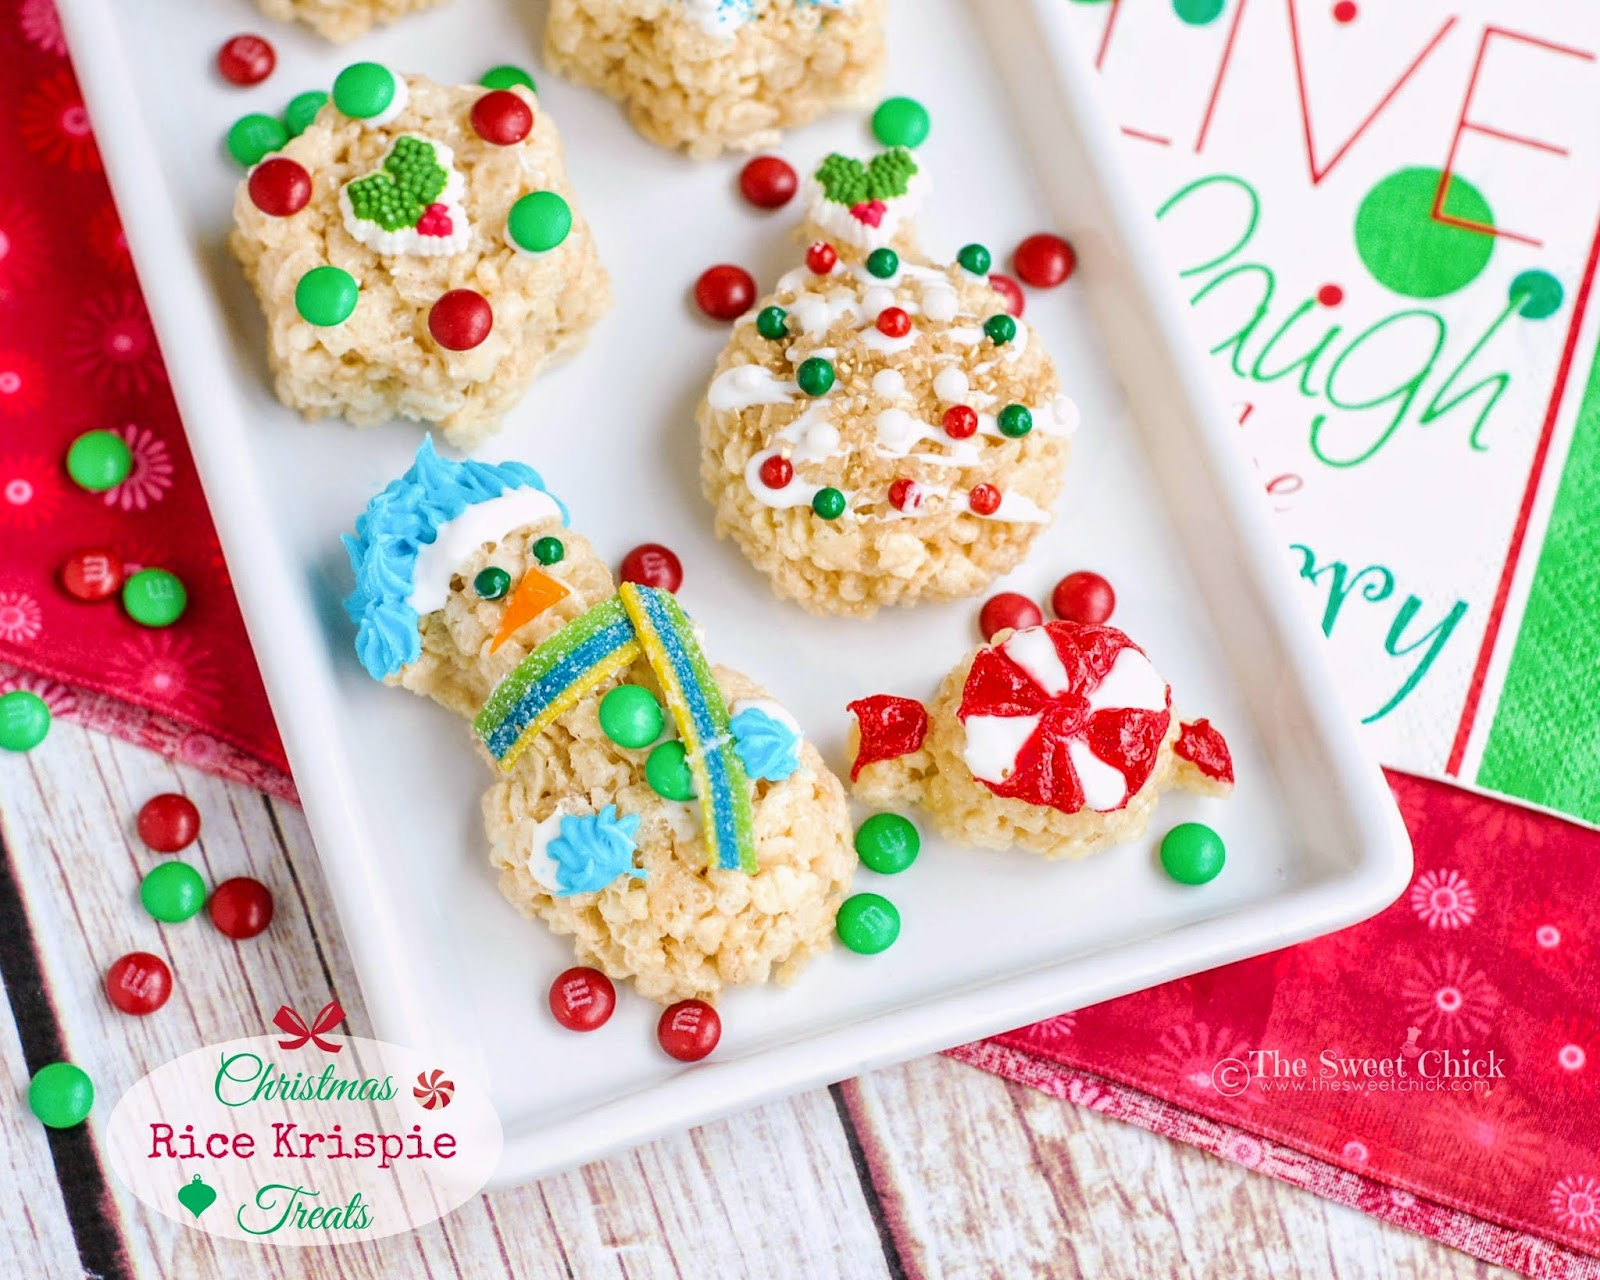 Christmas Rice Krispie Treats by The Sweet Chick